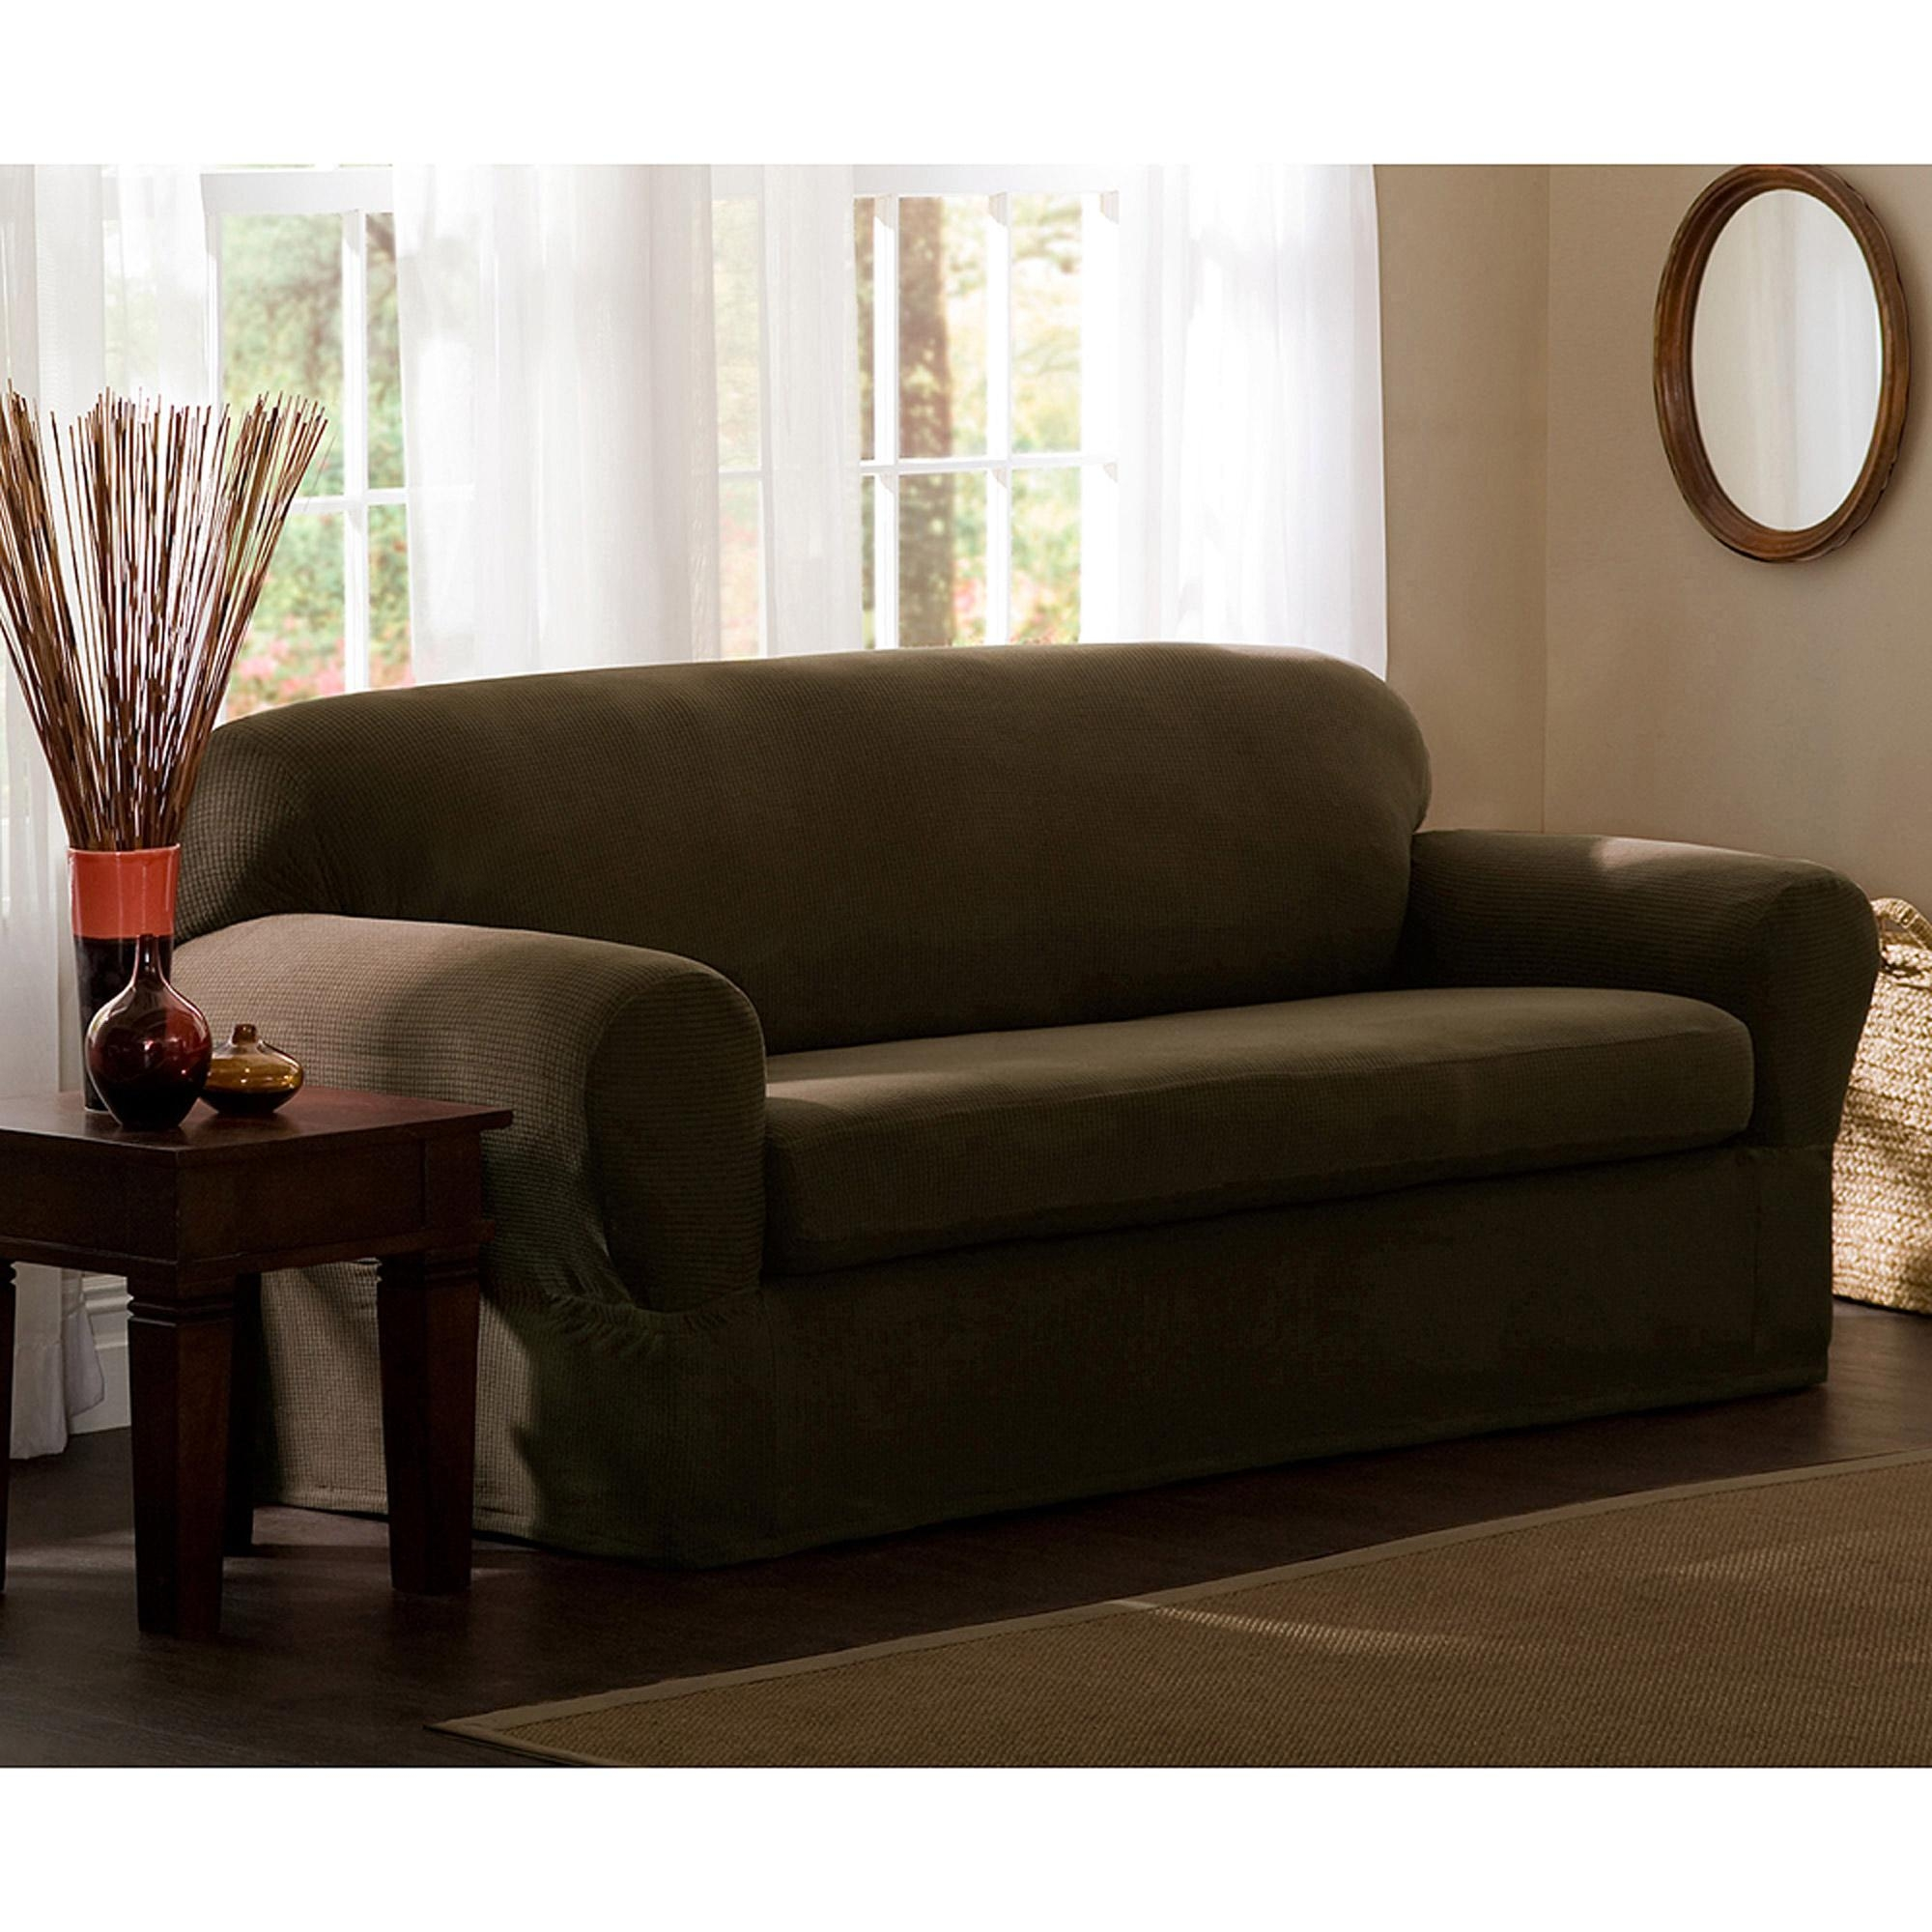 Mainstays Faux Suede Loveseat Slipcover – Walmart For Suede Slipcovers For Sofas (View 18 of 20)